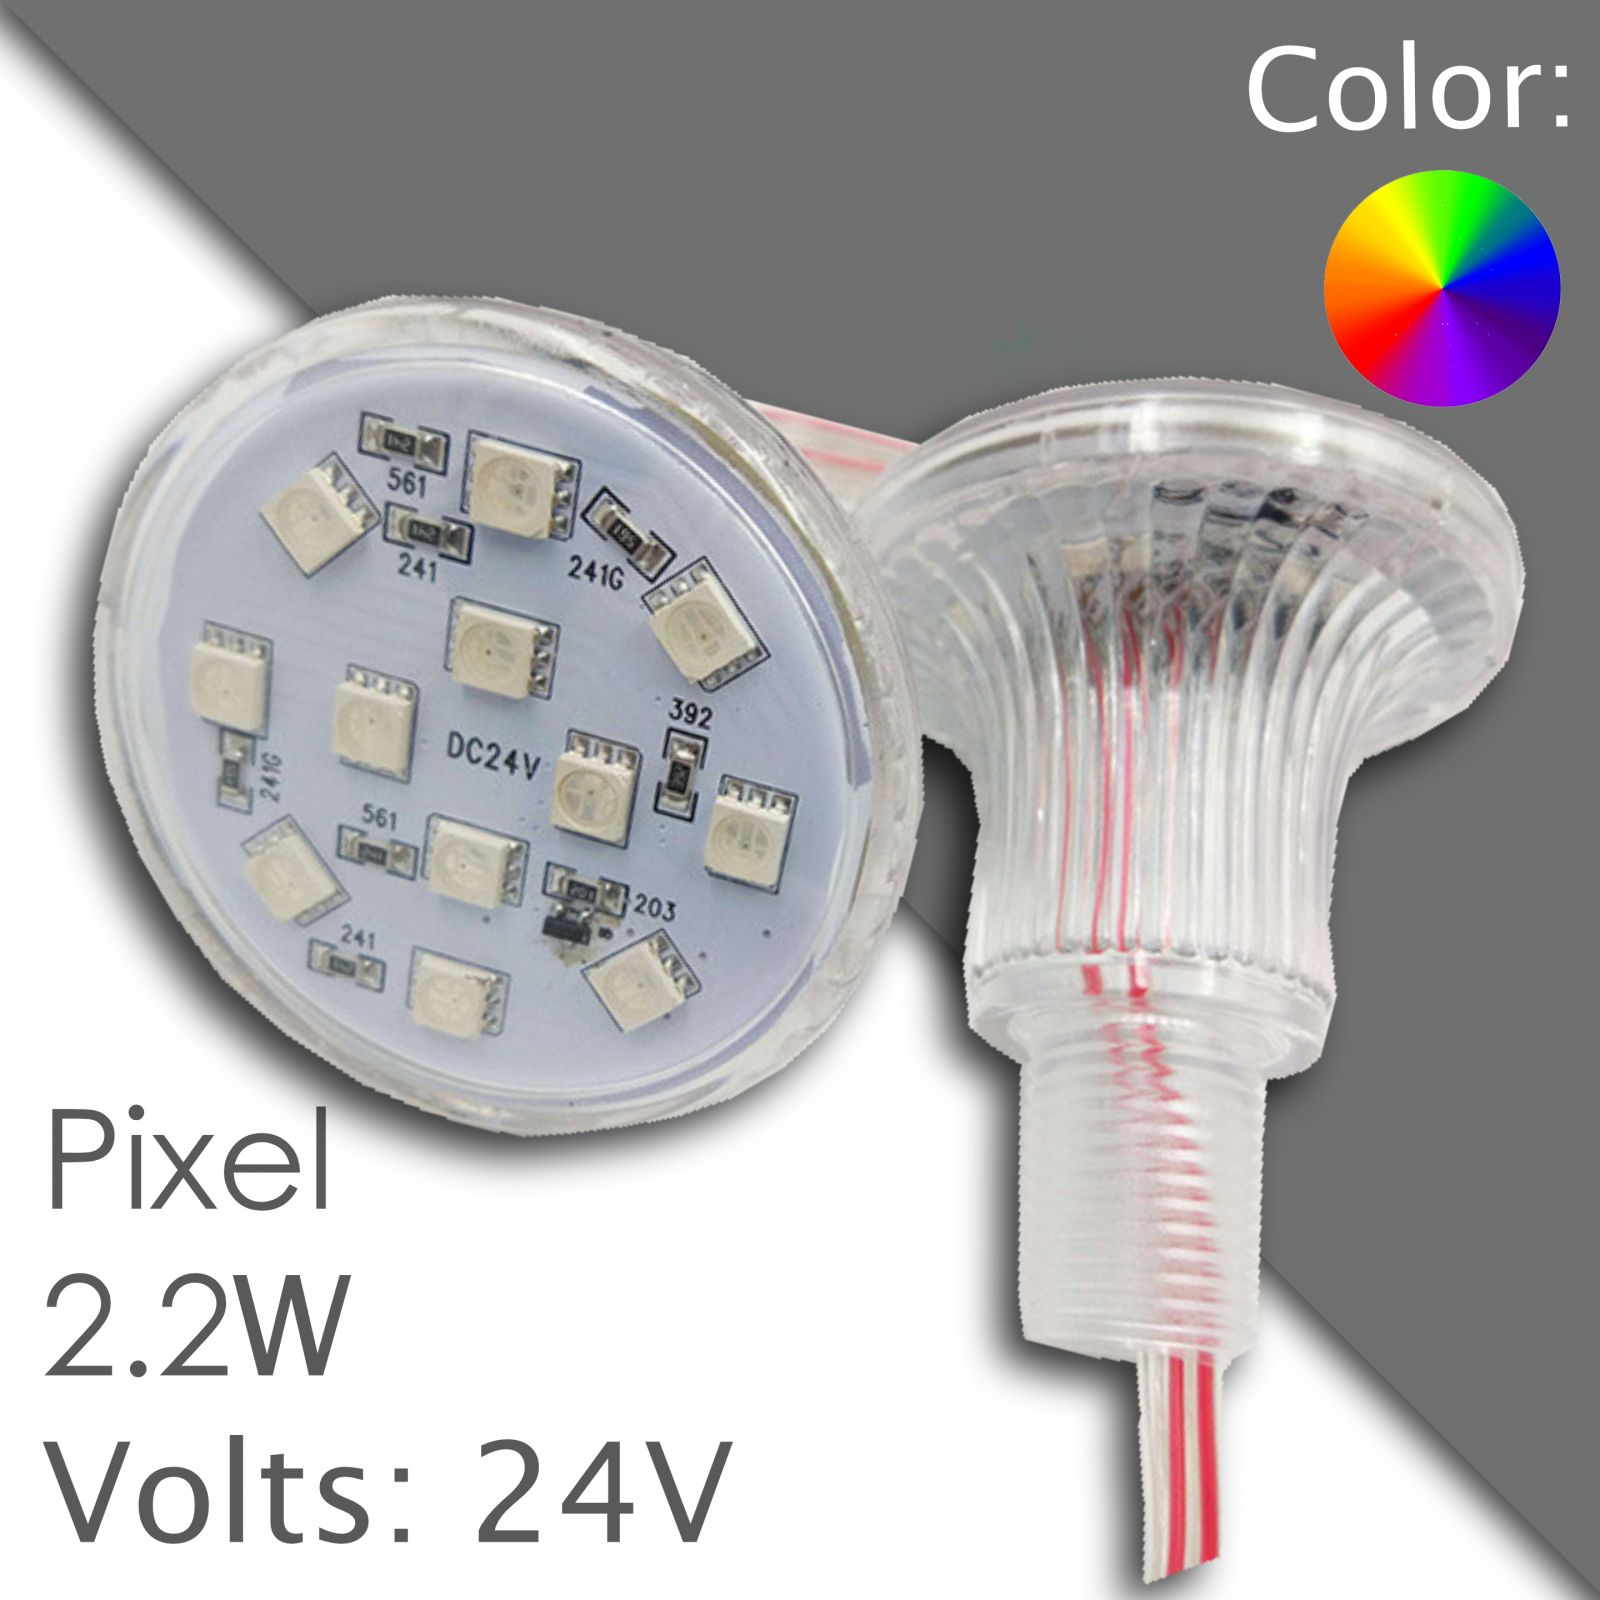 Led pixel RGB 60mm DC 24V, programmable 034